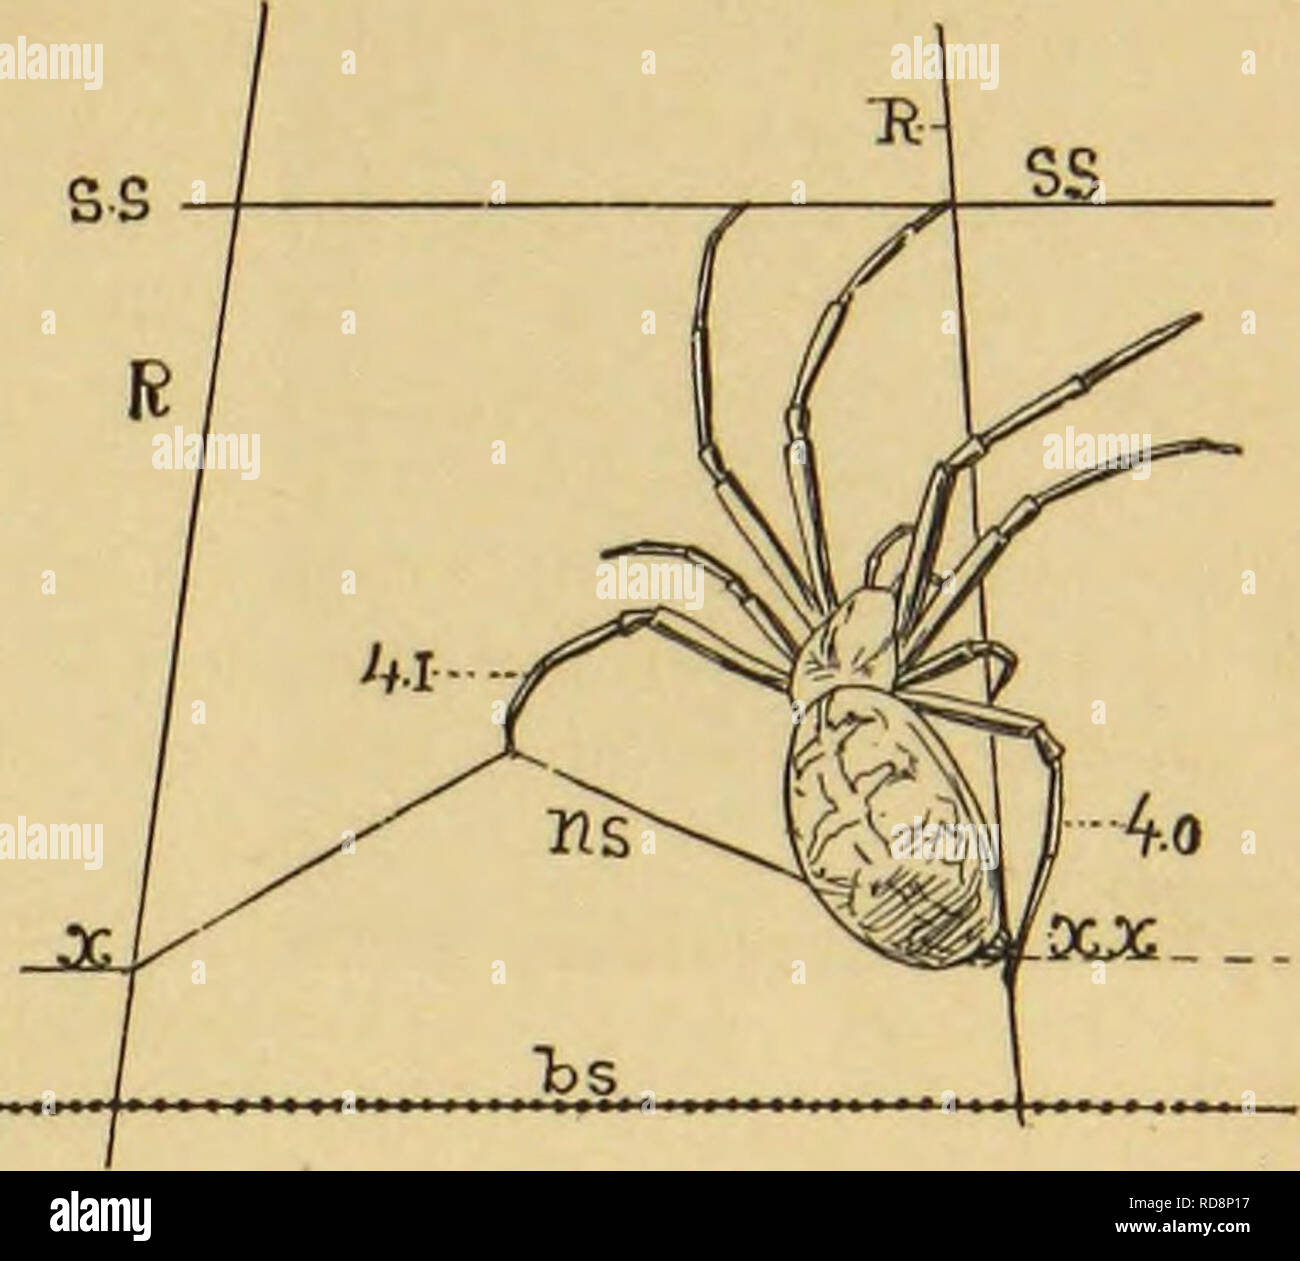 . American spiders and their spinning work. A natural history of the orbweaving spiders of the United States, with special regard to their industry and habits. Spiders. THE ARMATURE OF ORBWEBS : VISCID SPIRALS. 81. Fig. 79. Clamping a spiral string. which the spider all the while has been rapidly approaching, and grasps it with the claws just beneath the point where the new string will cross. This then is the attitude of the spider at this point of her operations. Fig. 79. One hind foot (4.o) grasps the radius near and below the point (xx) just opposite the last point of attachment. The other  - Stock Image